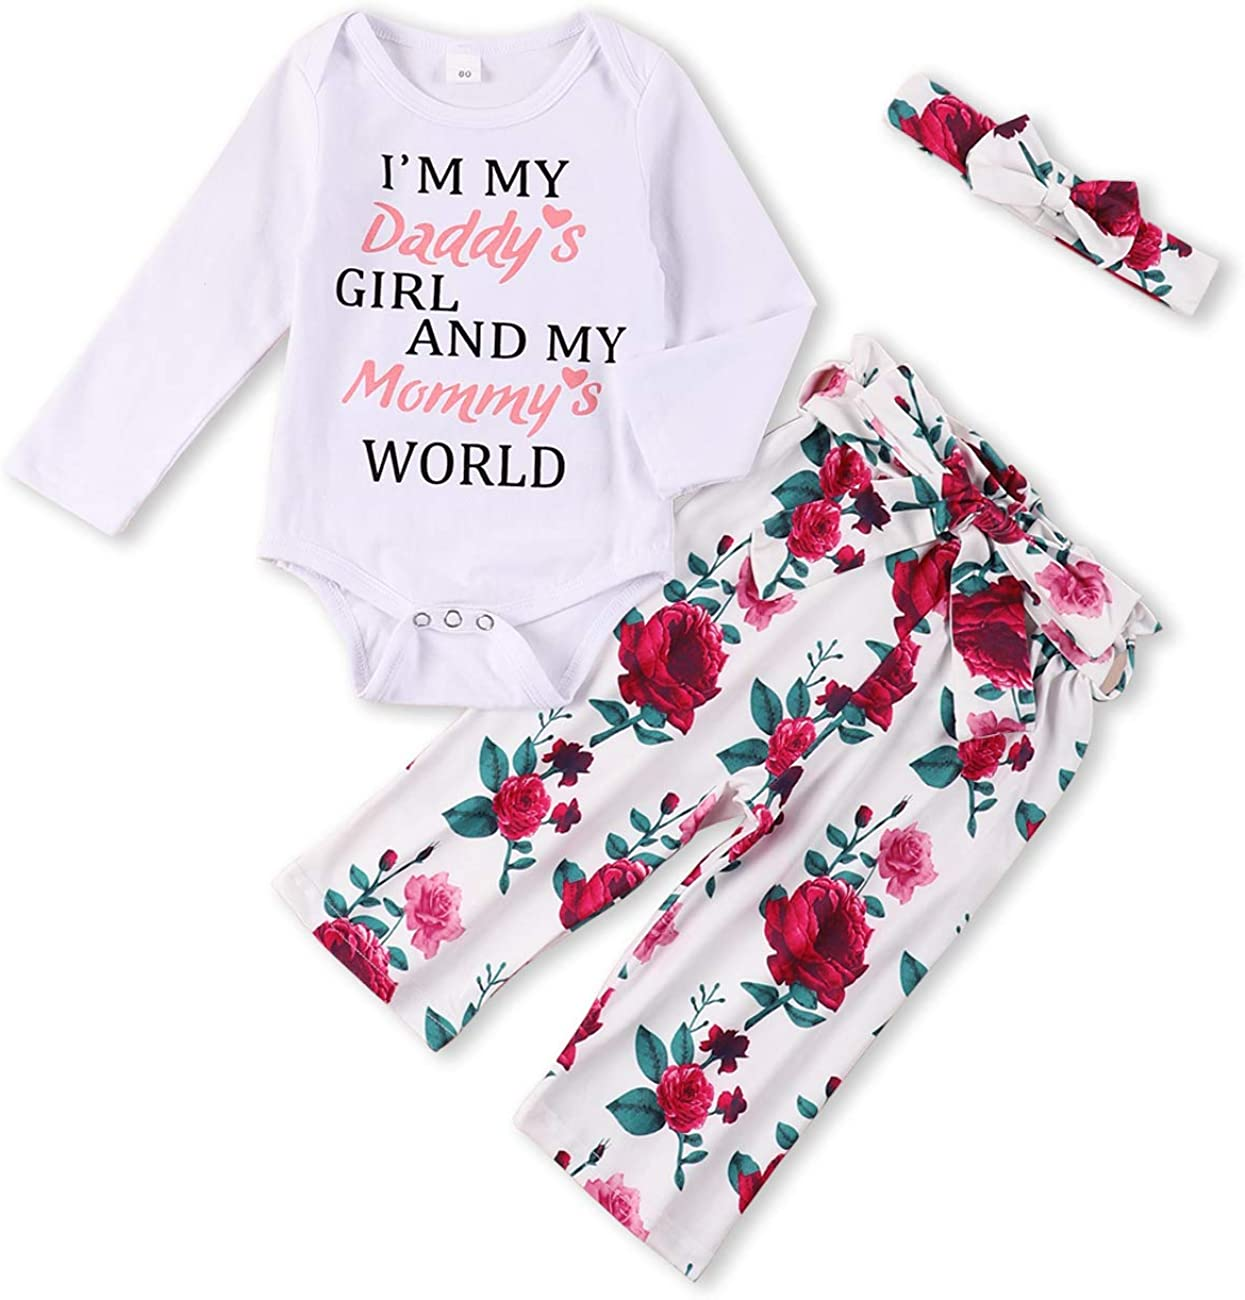 Toddler Baby Girls Clothes Infant Baby Girl Clothes Romper Top and Pants Set for Girl